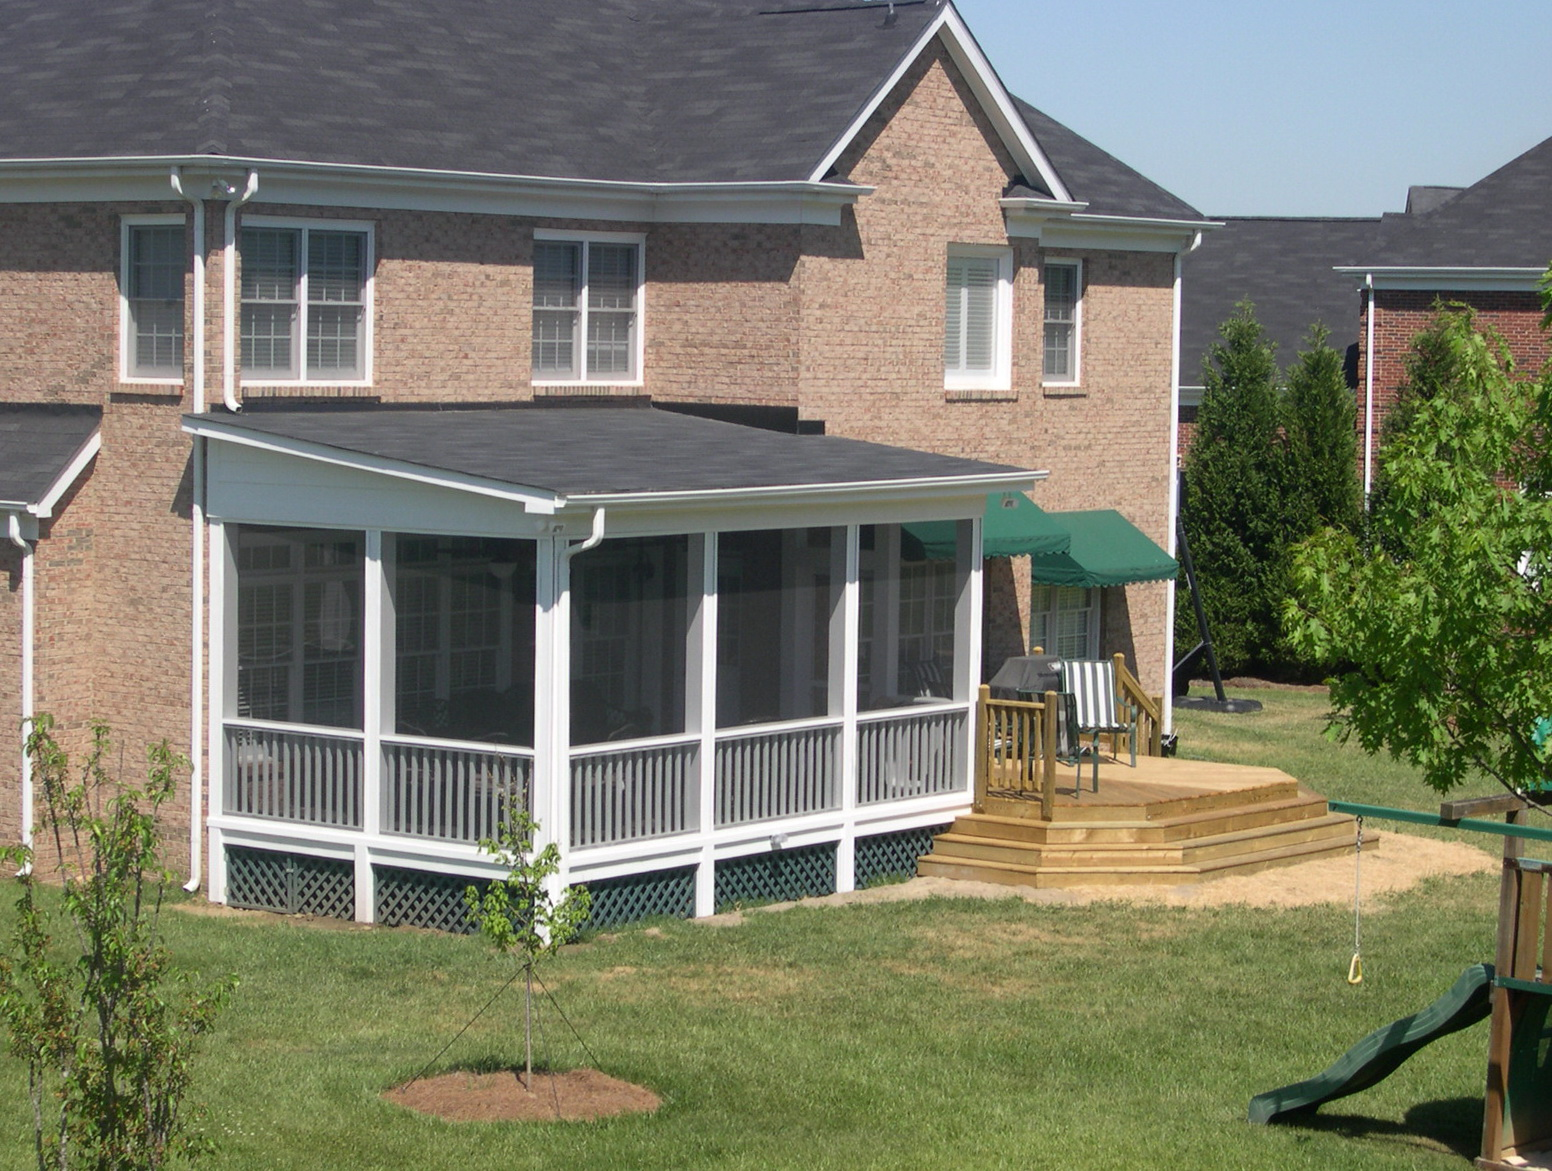 Porch roof construction plans home design ideas for Porch construction drawings